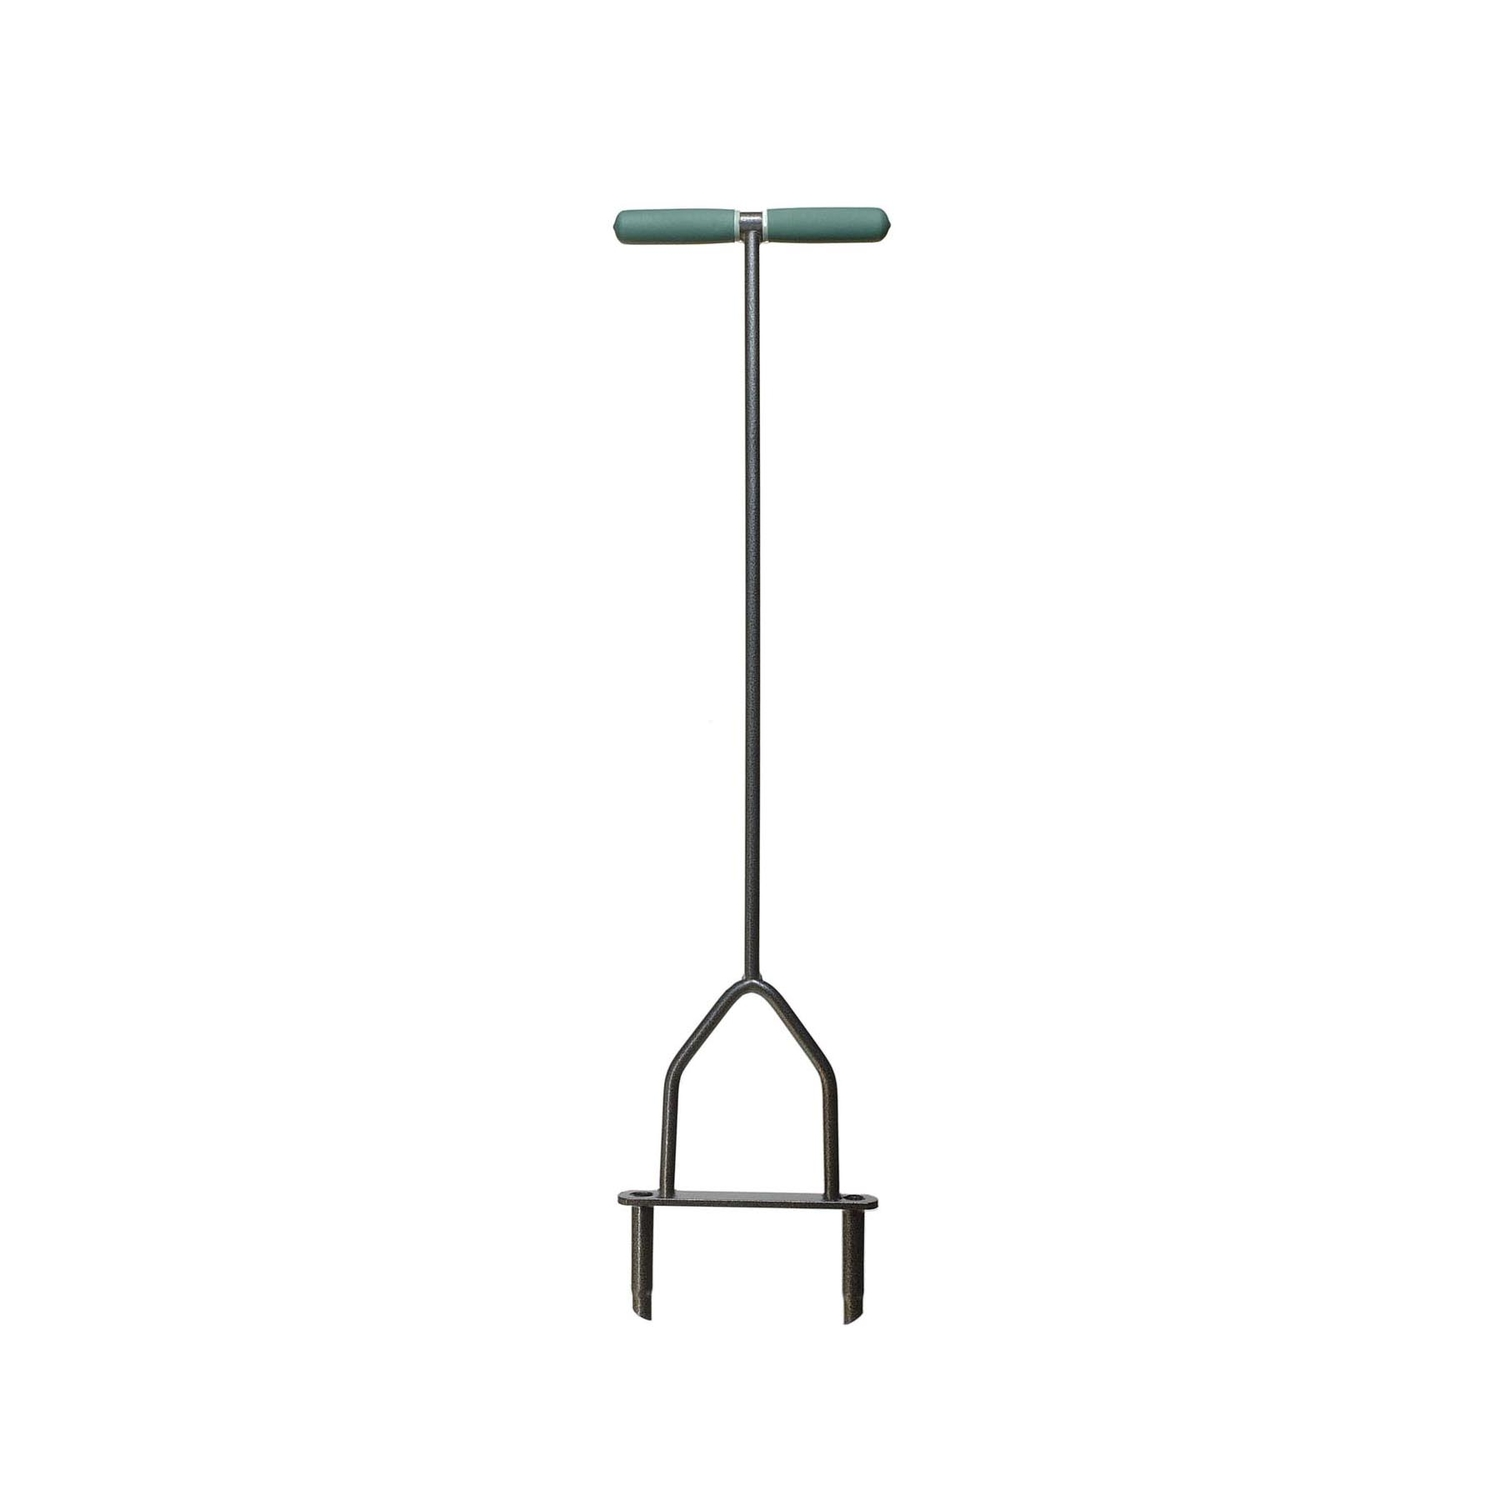 Lewis  Yard Butler  9 in. W Lawn Aerator  Hand Held